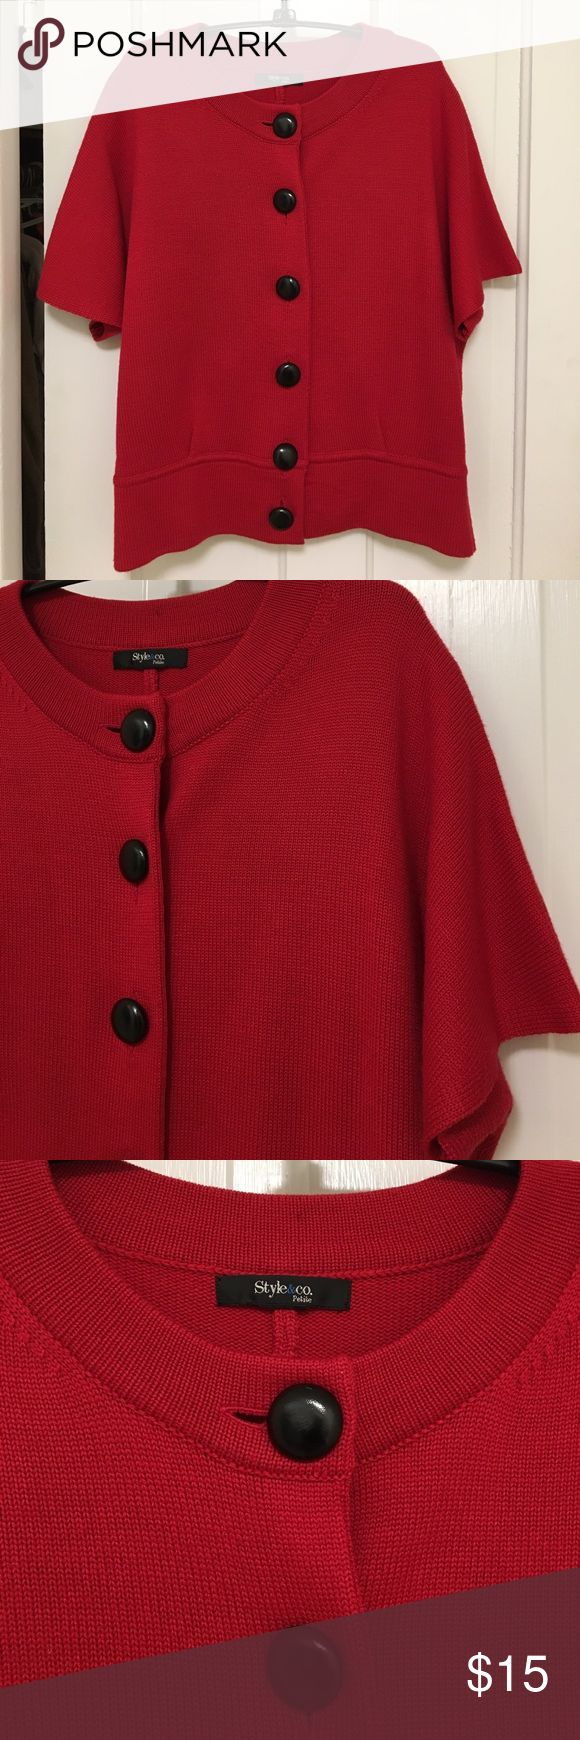 Style & Co Petite Cardigan Red Cardigan, short sleeves, large black buttons, knit. Style & Co Sweaters Cardigans